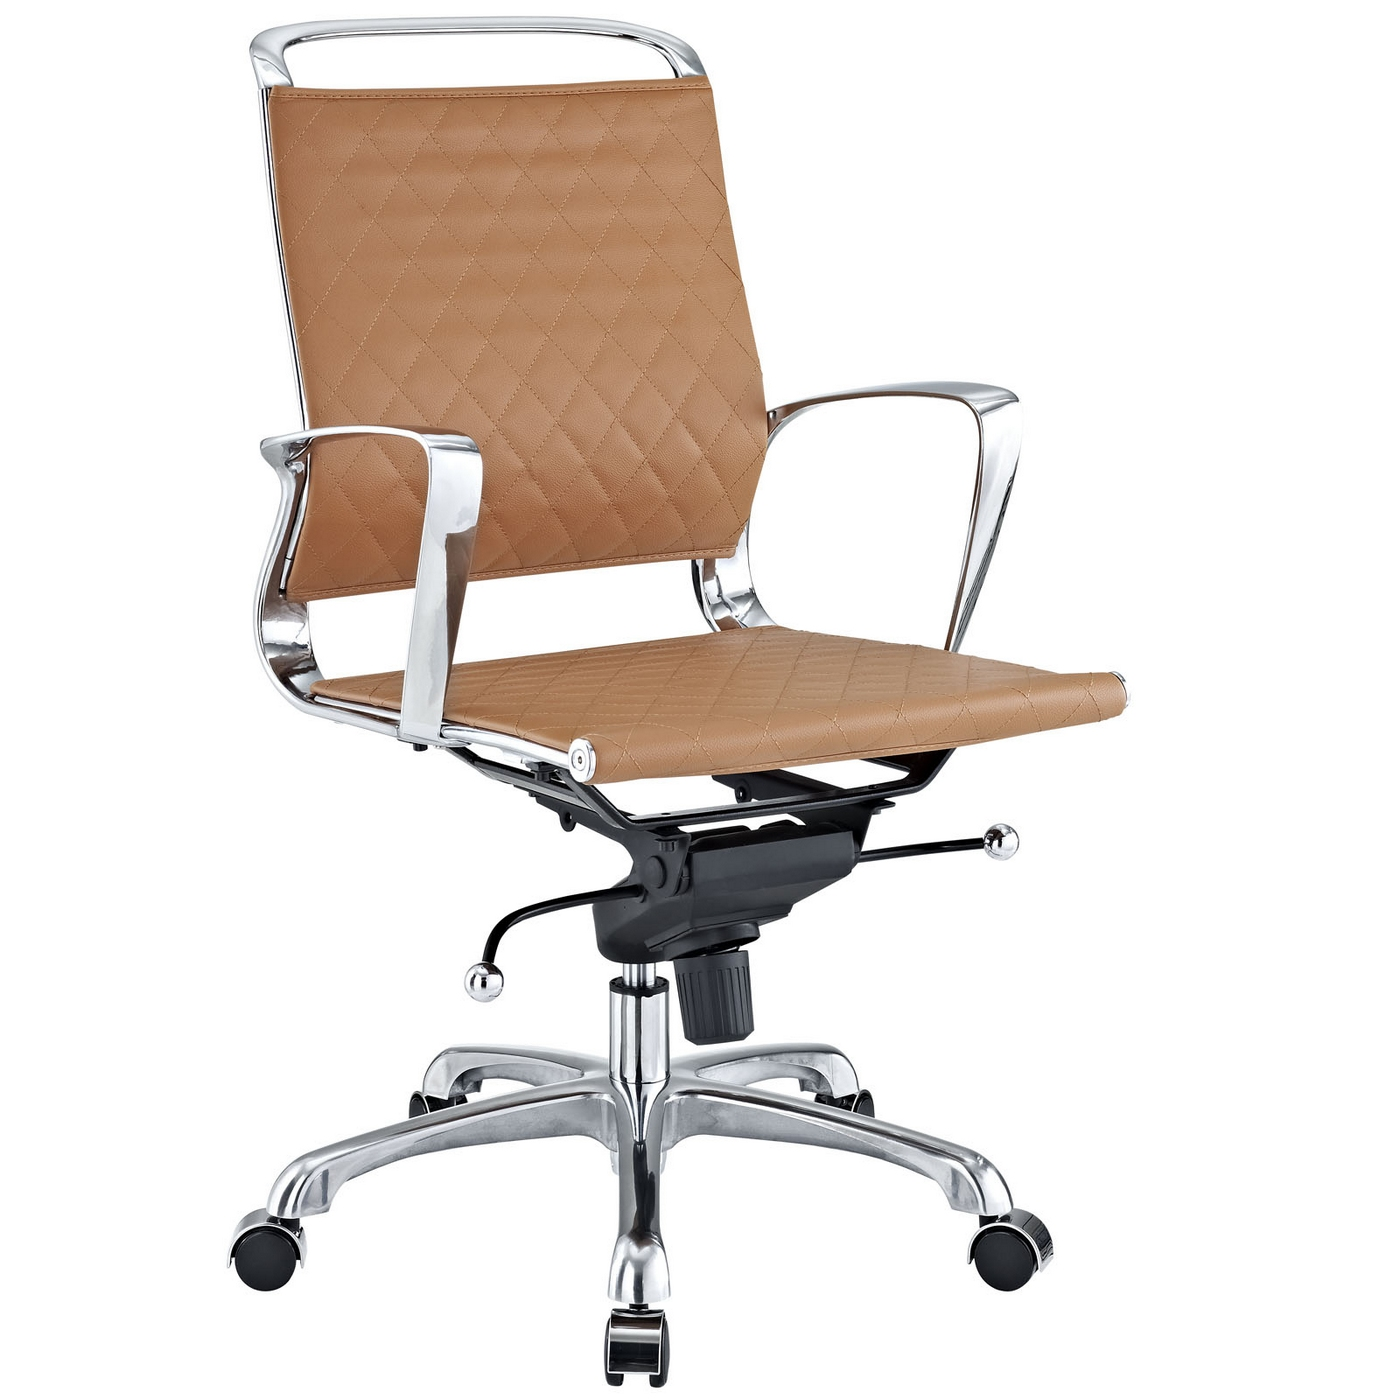 Vibe Modern Mid Back Leather Office Chair With Chrome ...